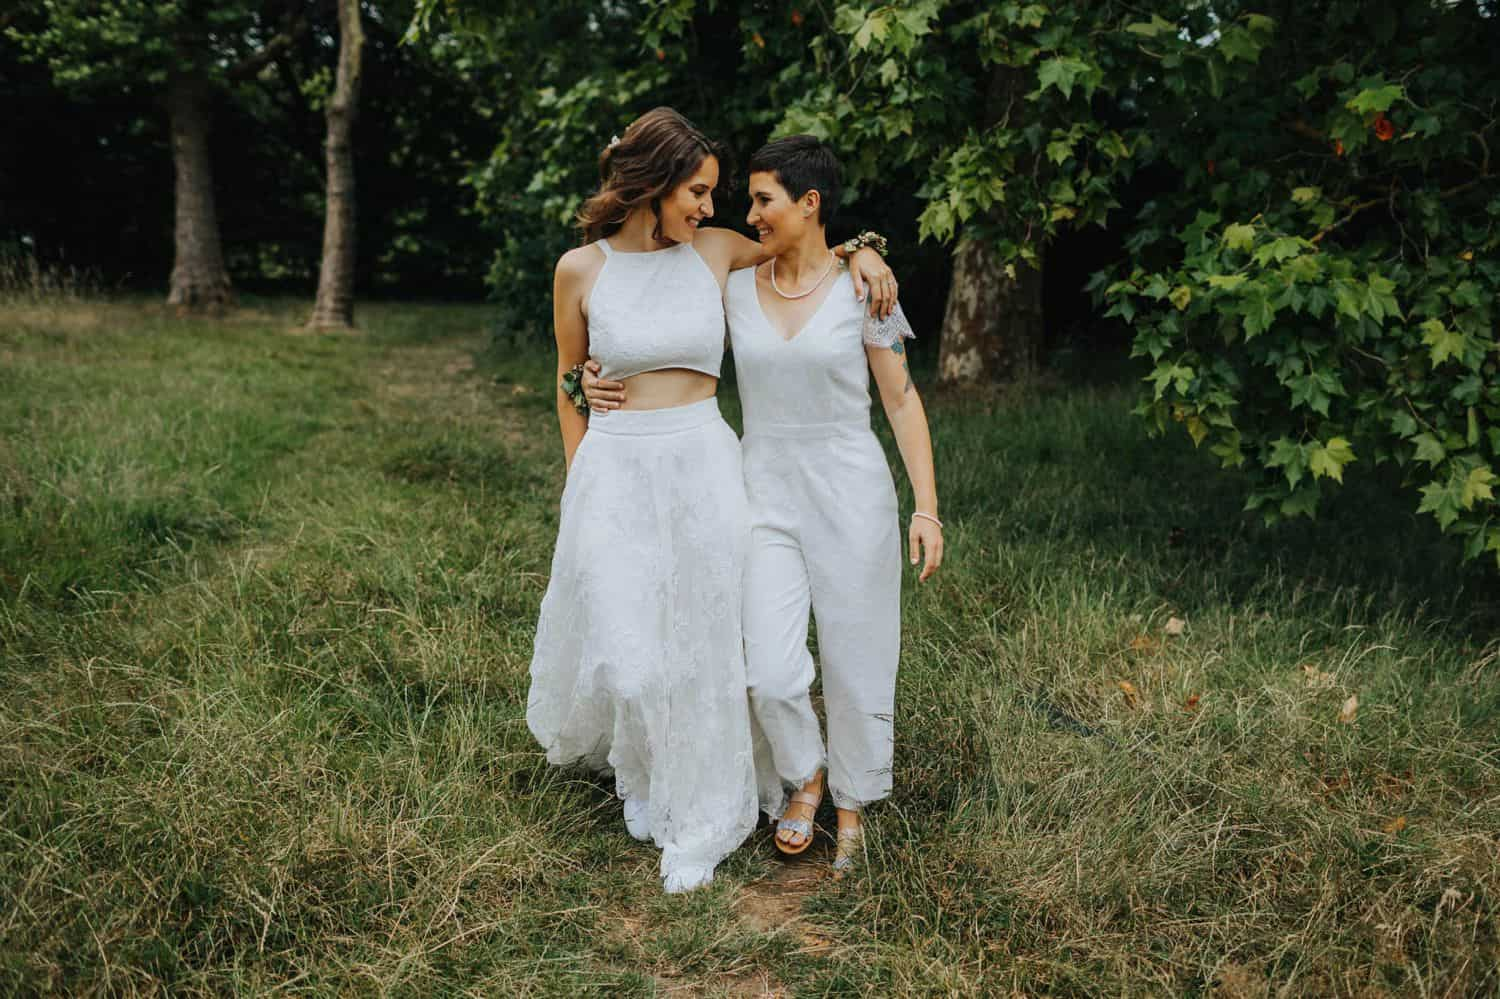 How To Make A Photography Website Your Dream Clients Can't Resist: Two brides walk through the woods with their arms wrapped around each other.